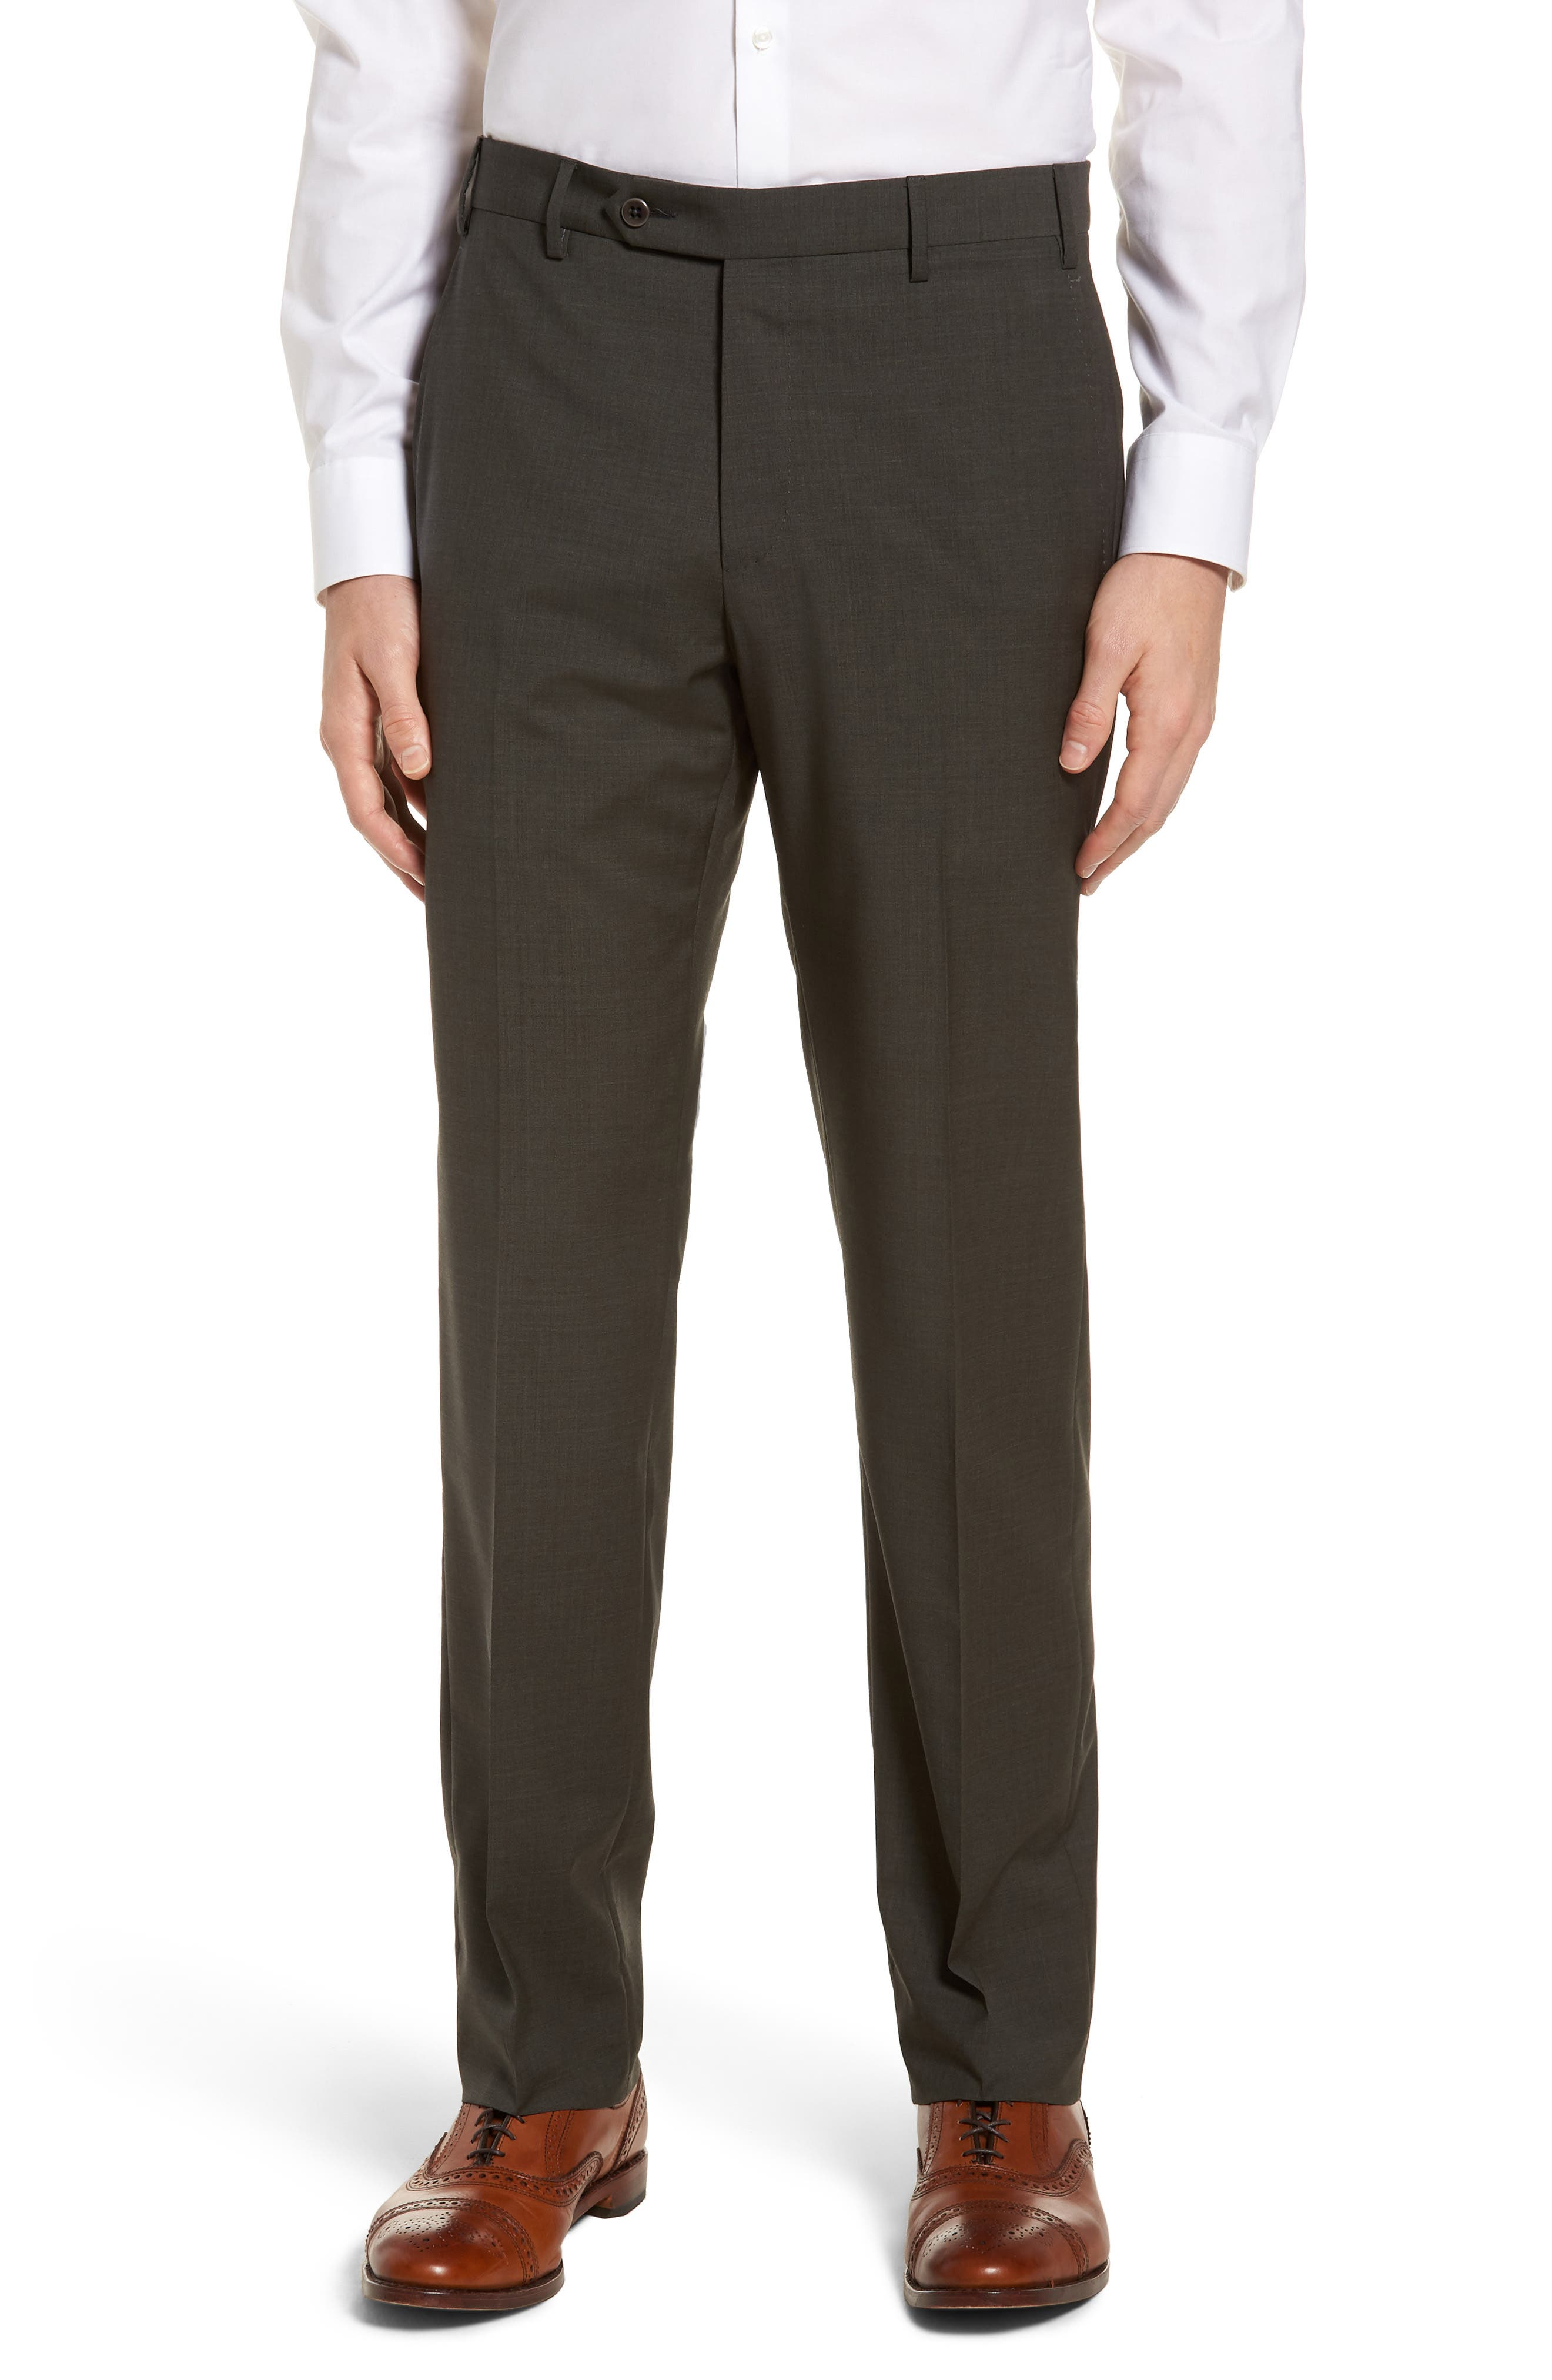 Devon Flat Front Solid Wool Trousers,                             Main thumbnail 1, color,                             Olive